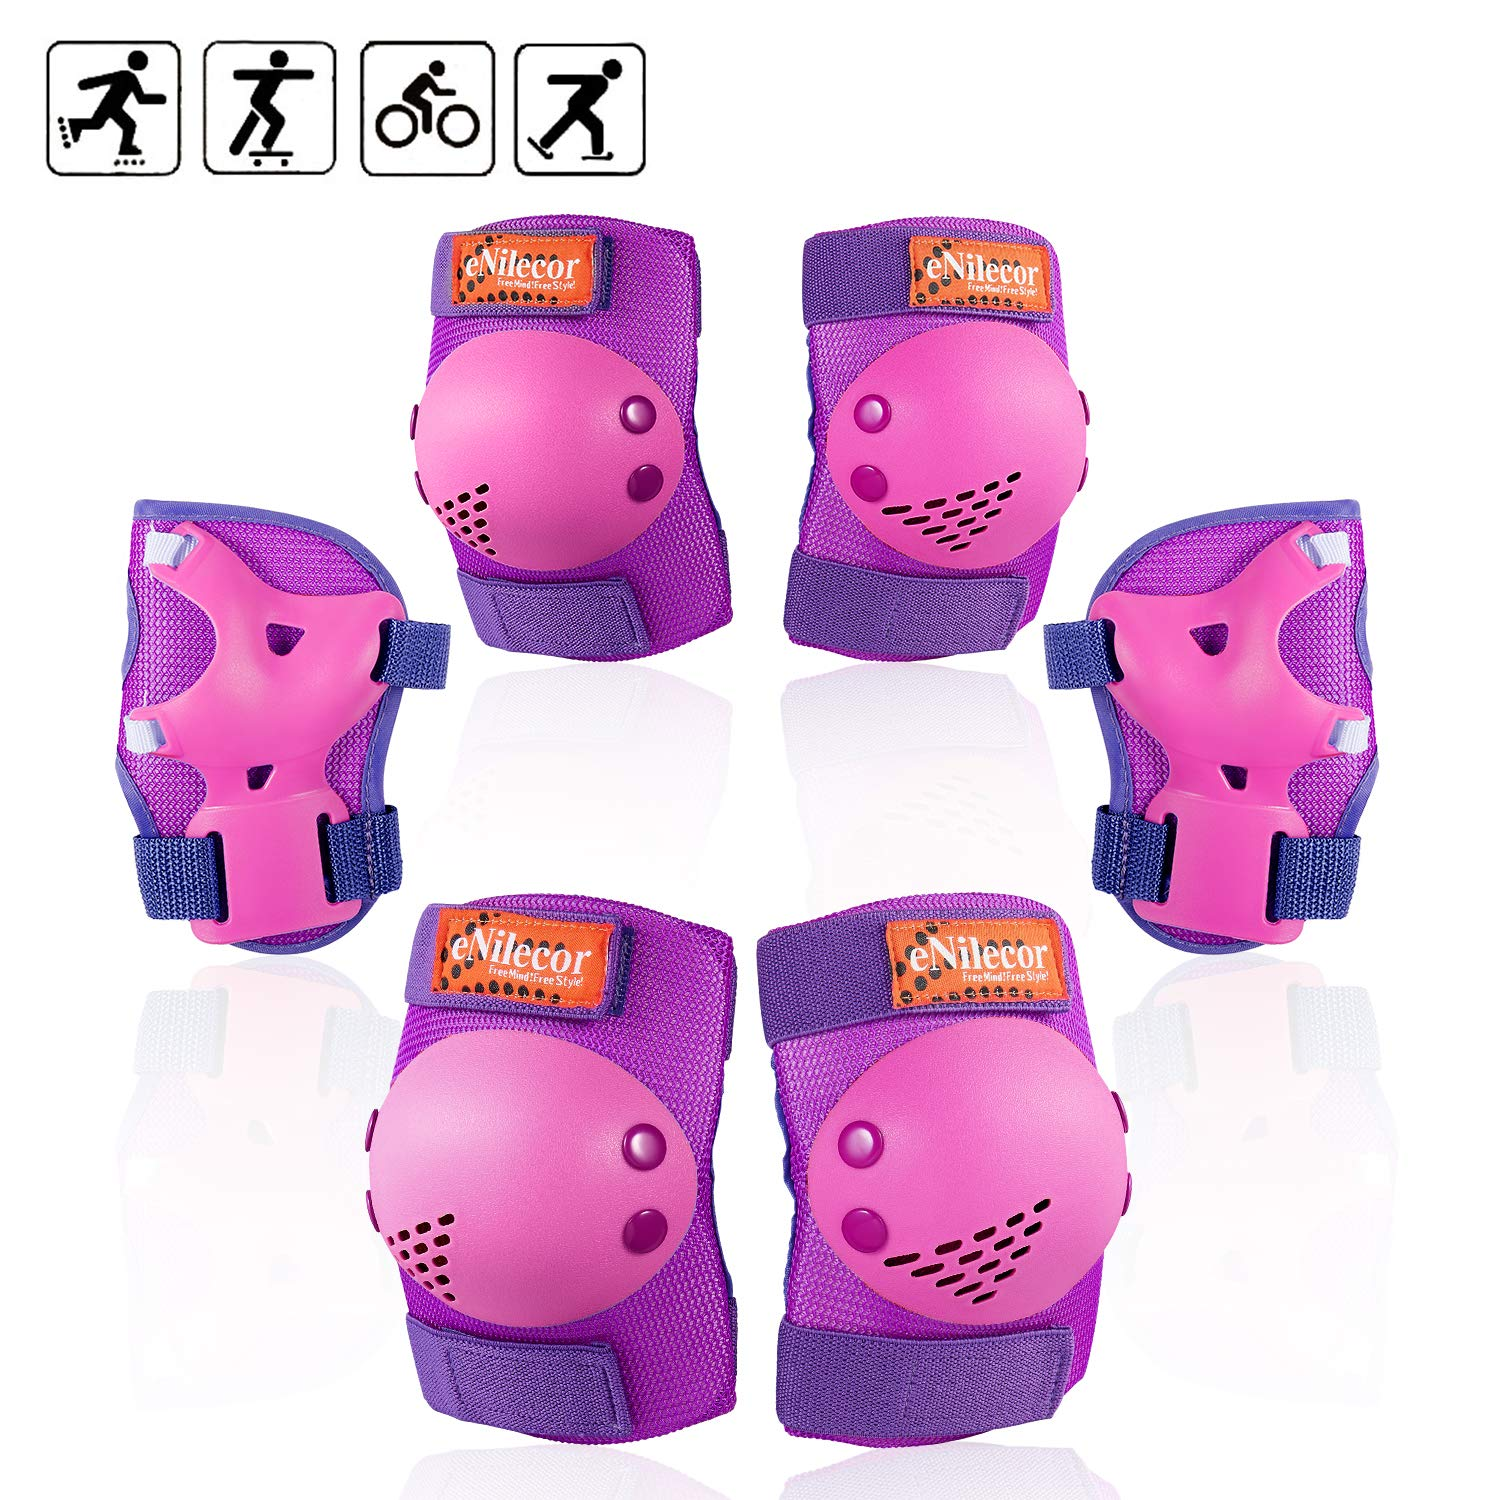 eNilecor Kids/Youth Rollerblade Roller Skates Cycling Knee Pads Elbow Pads Wrist Guards Protective Gear Set for Bike Skateboard Skatings Scooter Riding Sports (Purple/Pink, Medium)